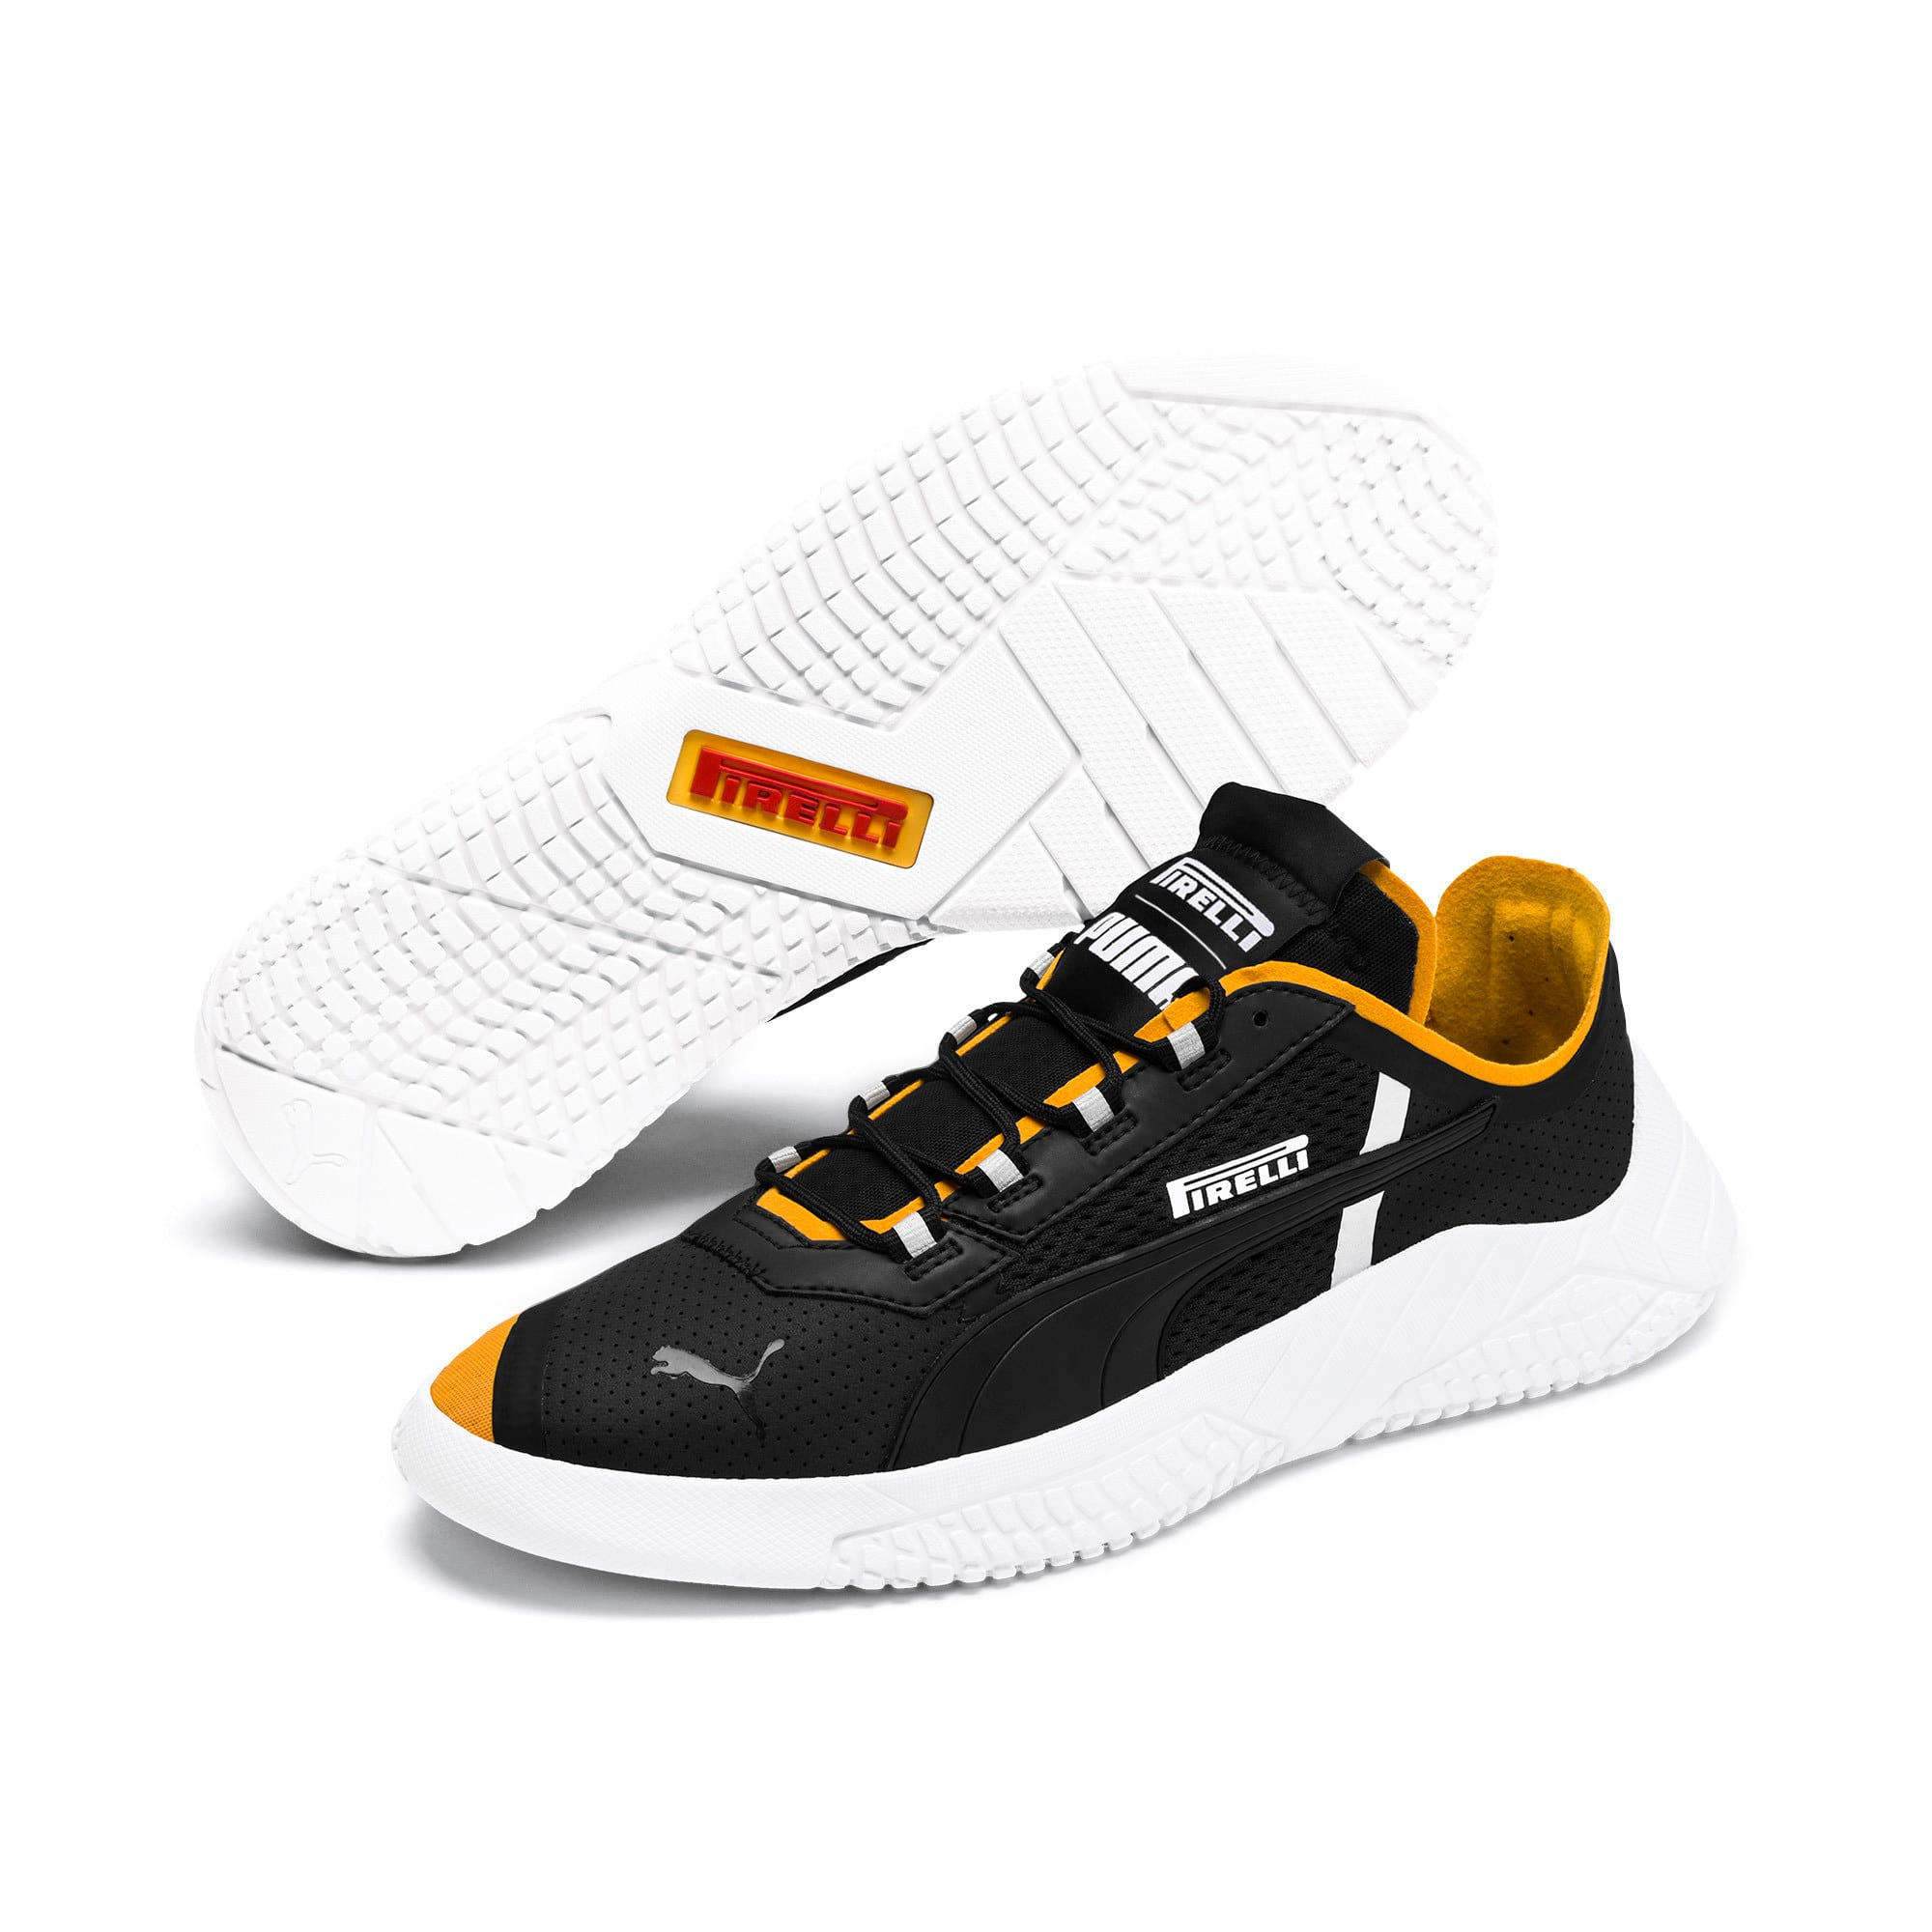 Thumbnail 3 of PUMA x PIRELLI Replicat-X Sneaker, Puma Black-Puma White-Zinnia, medium